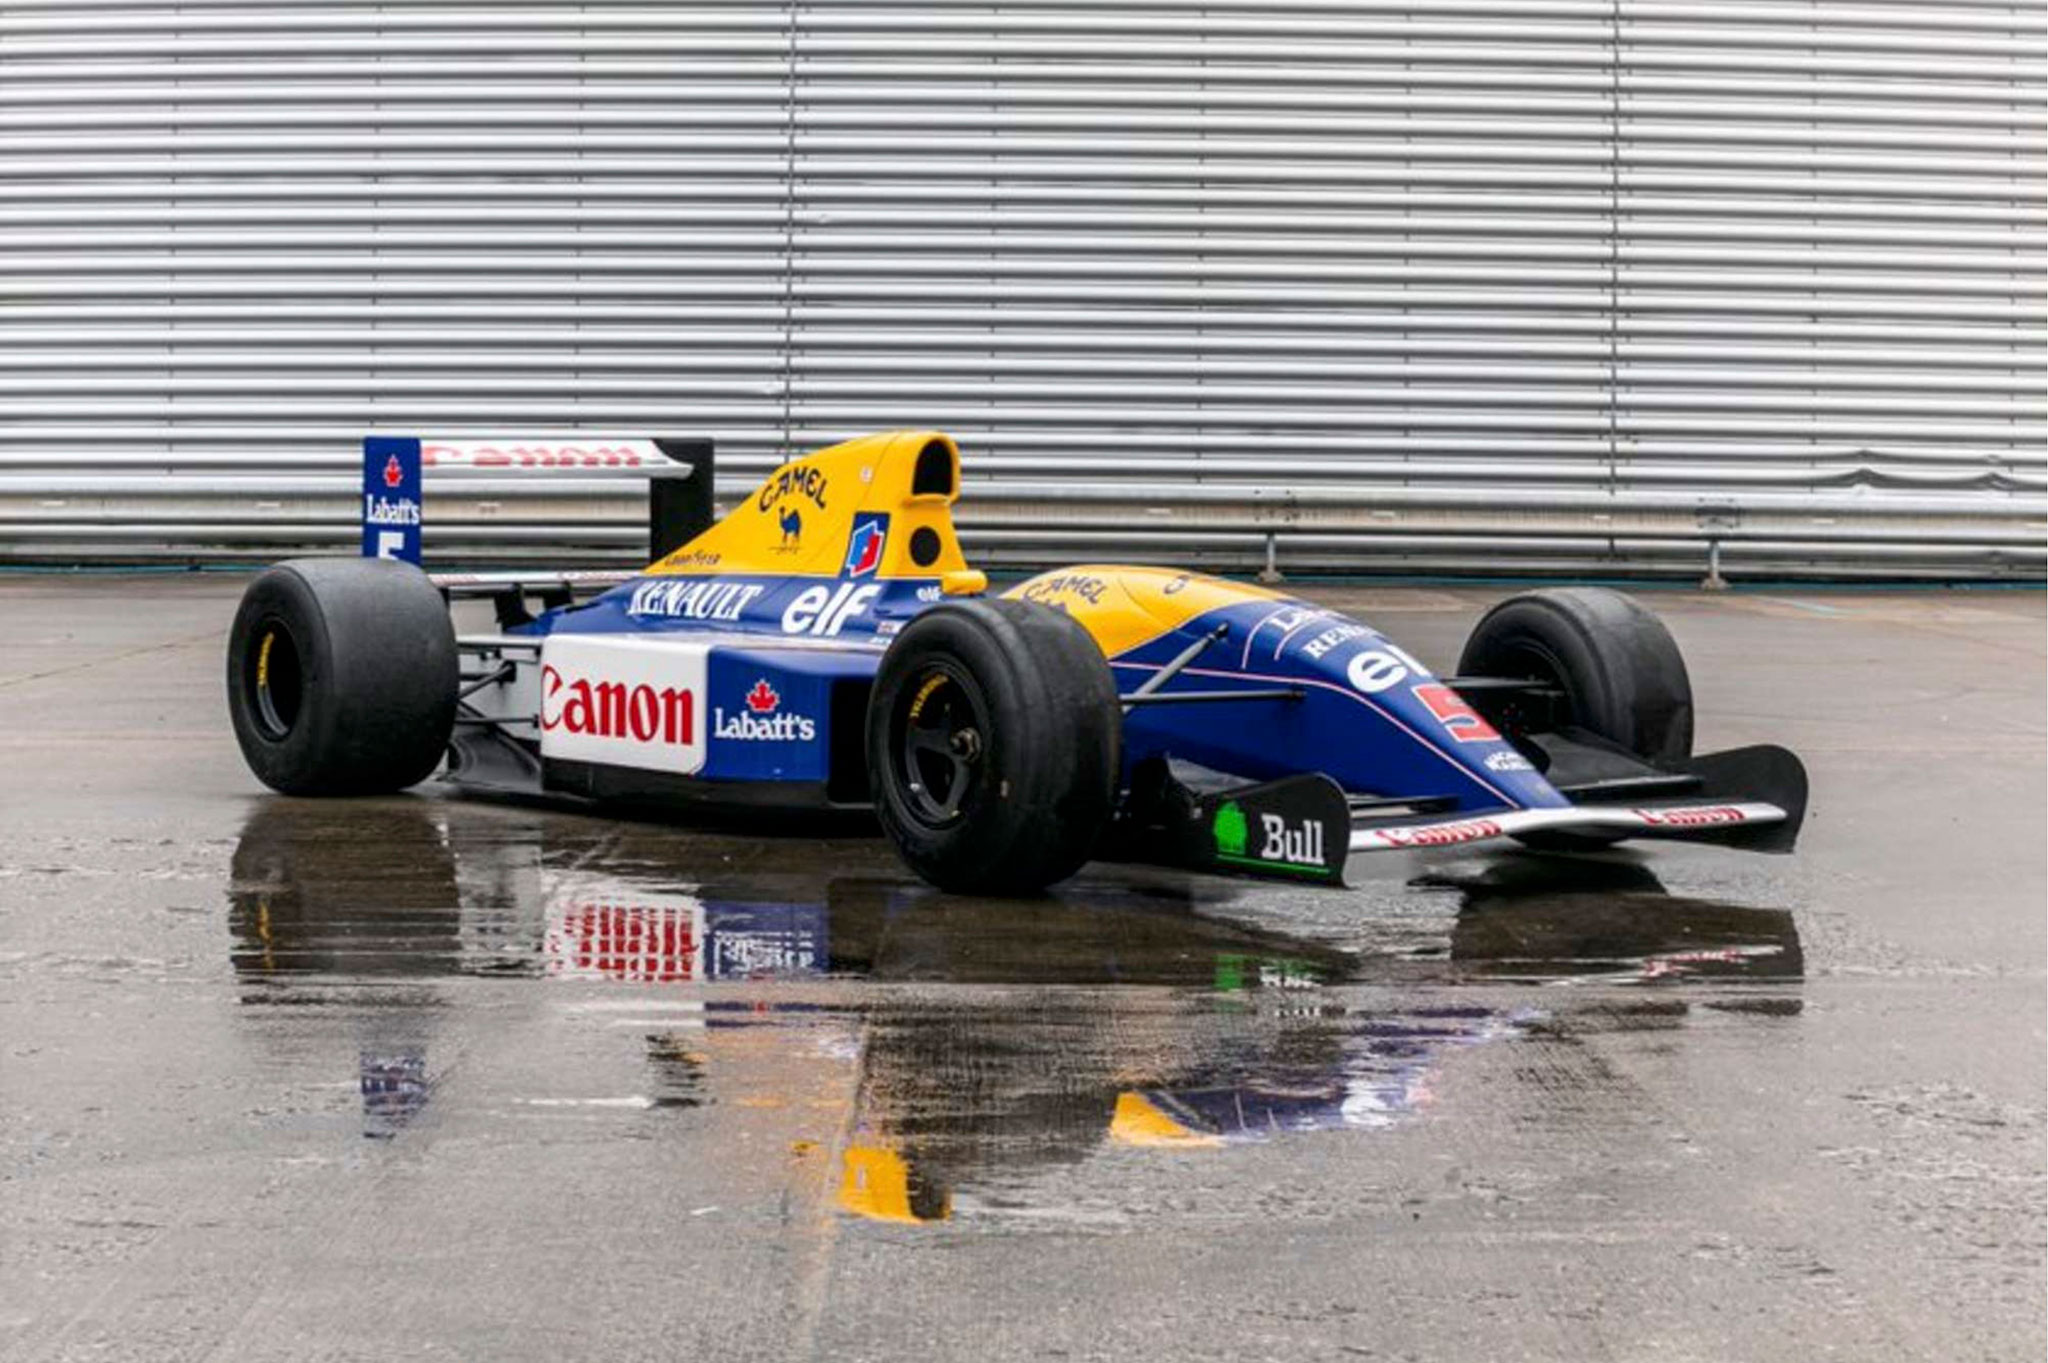 Williams F1 Red 5 FW14 display car - £174,375 - Silverstone Auction mars 2021.